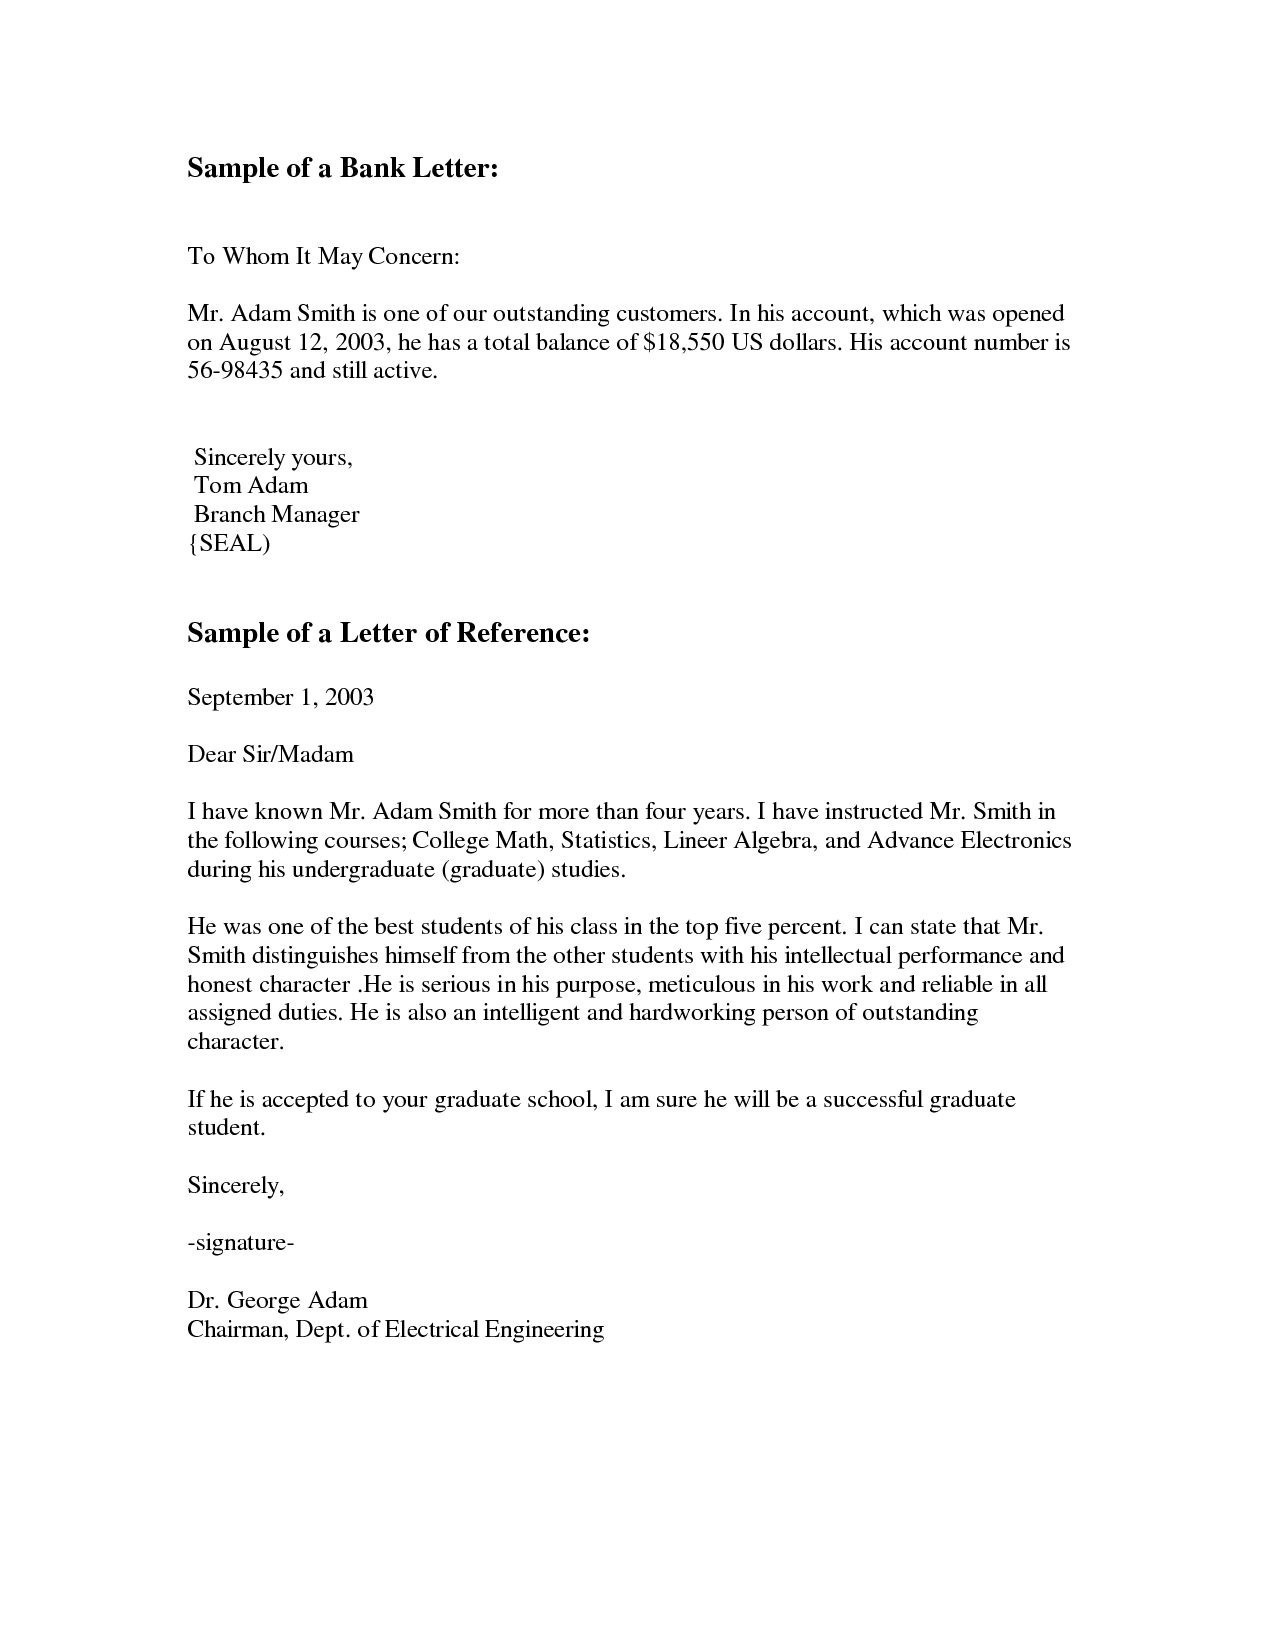 Letter Of Recommendation Template for Student - Writing A Letter Re Mendation for A Student for A Job Save